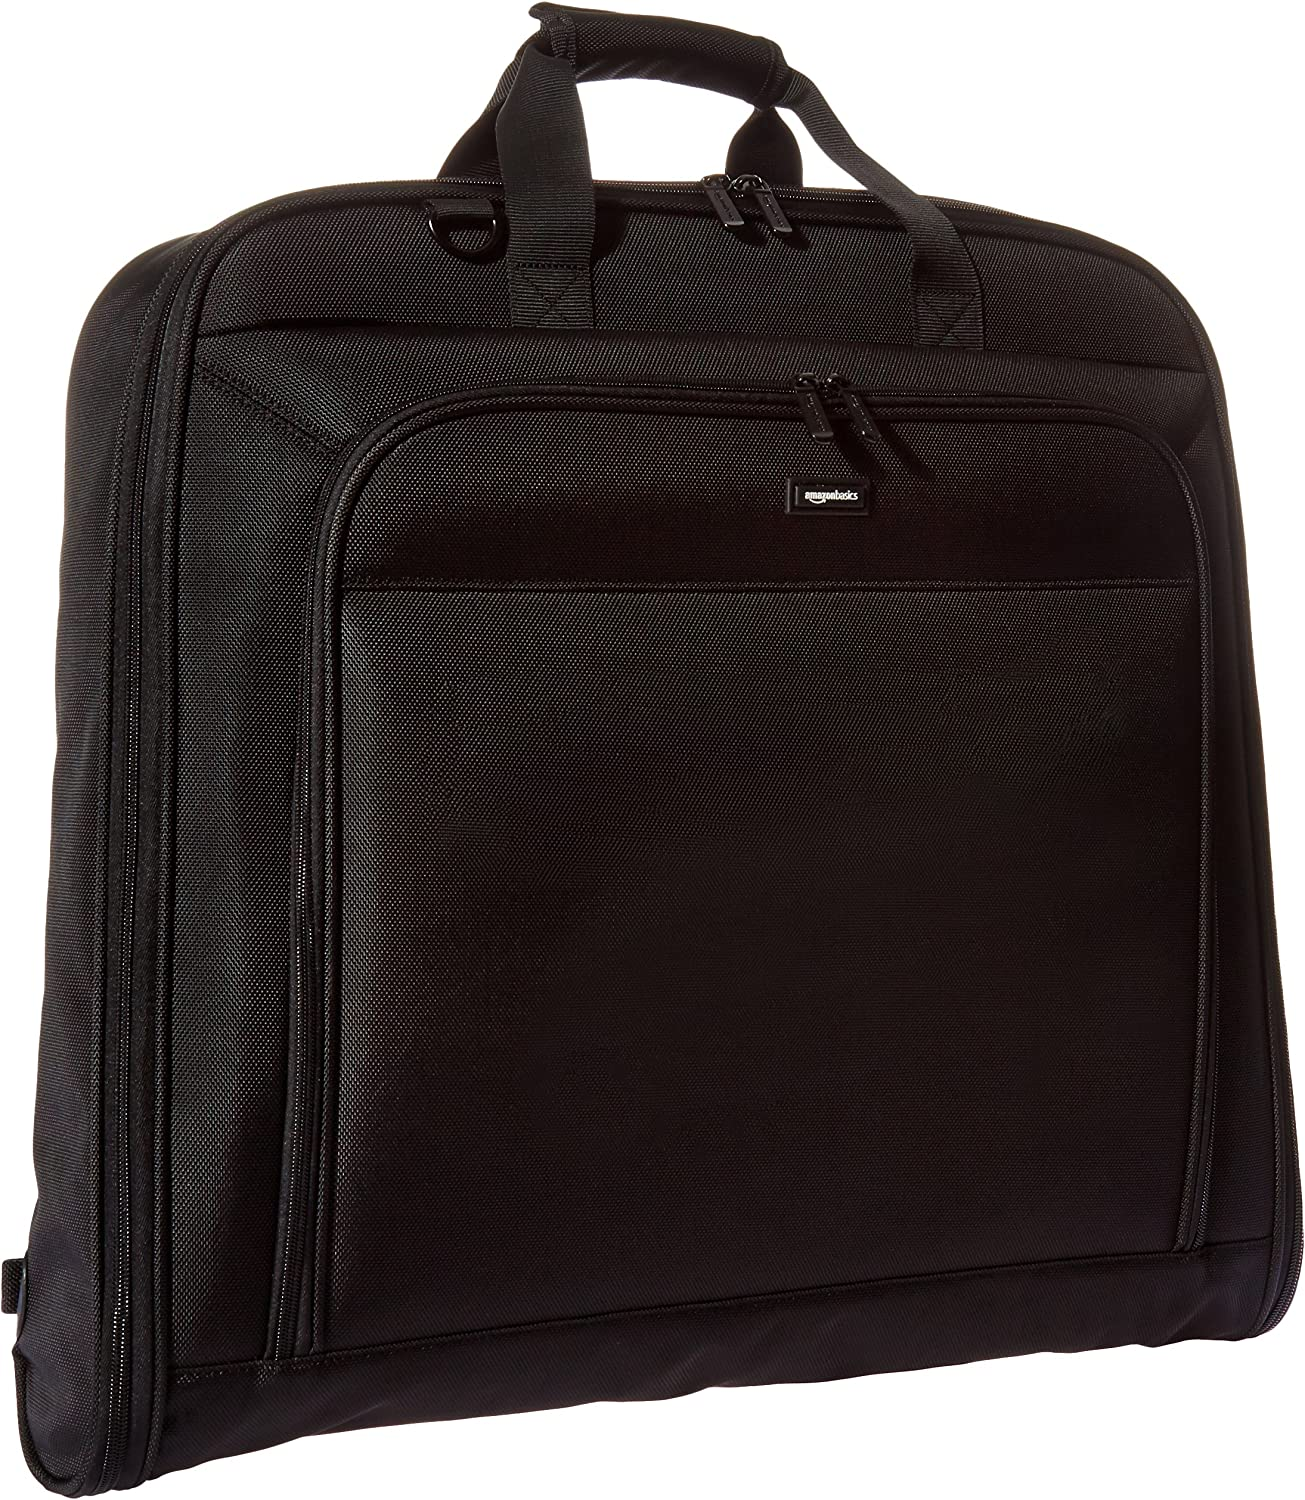 AmazonBasics Premium Travel Hanging Luggage Suit Garment Bag, 21.1 Inch, Black